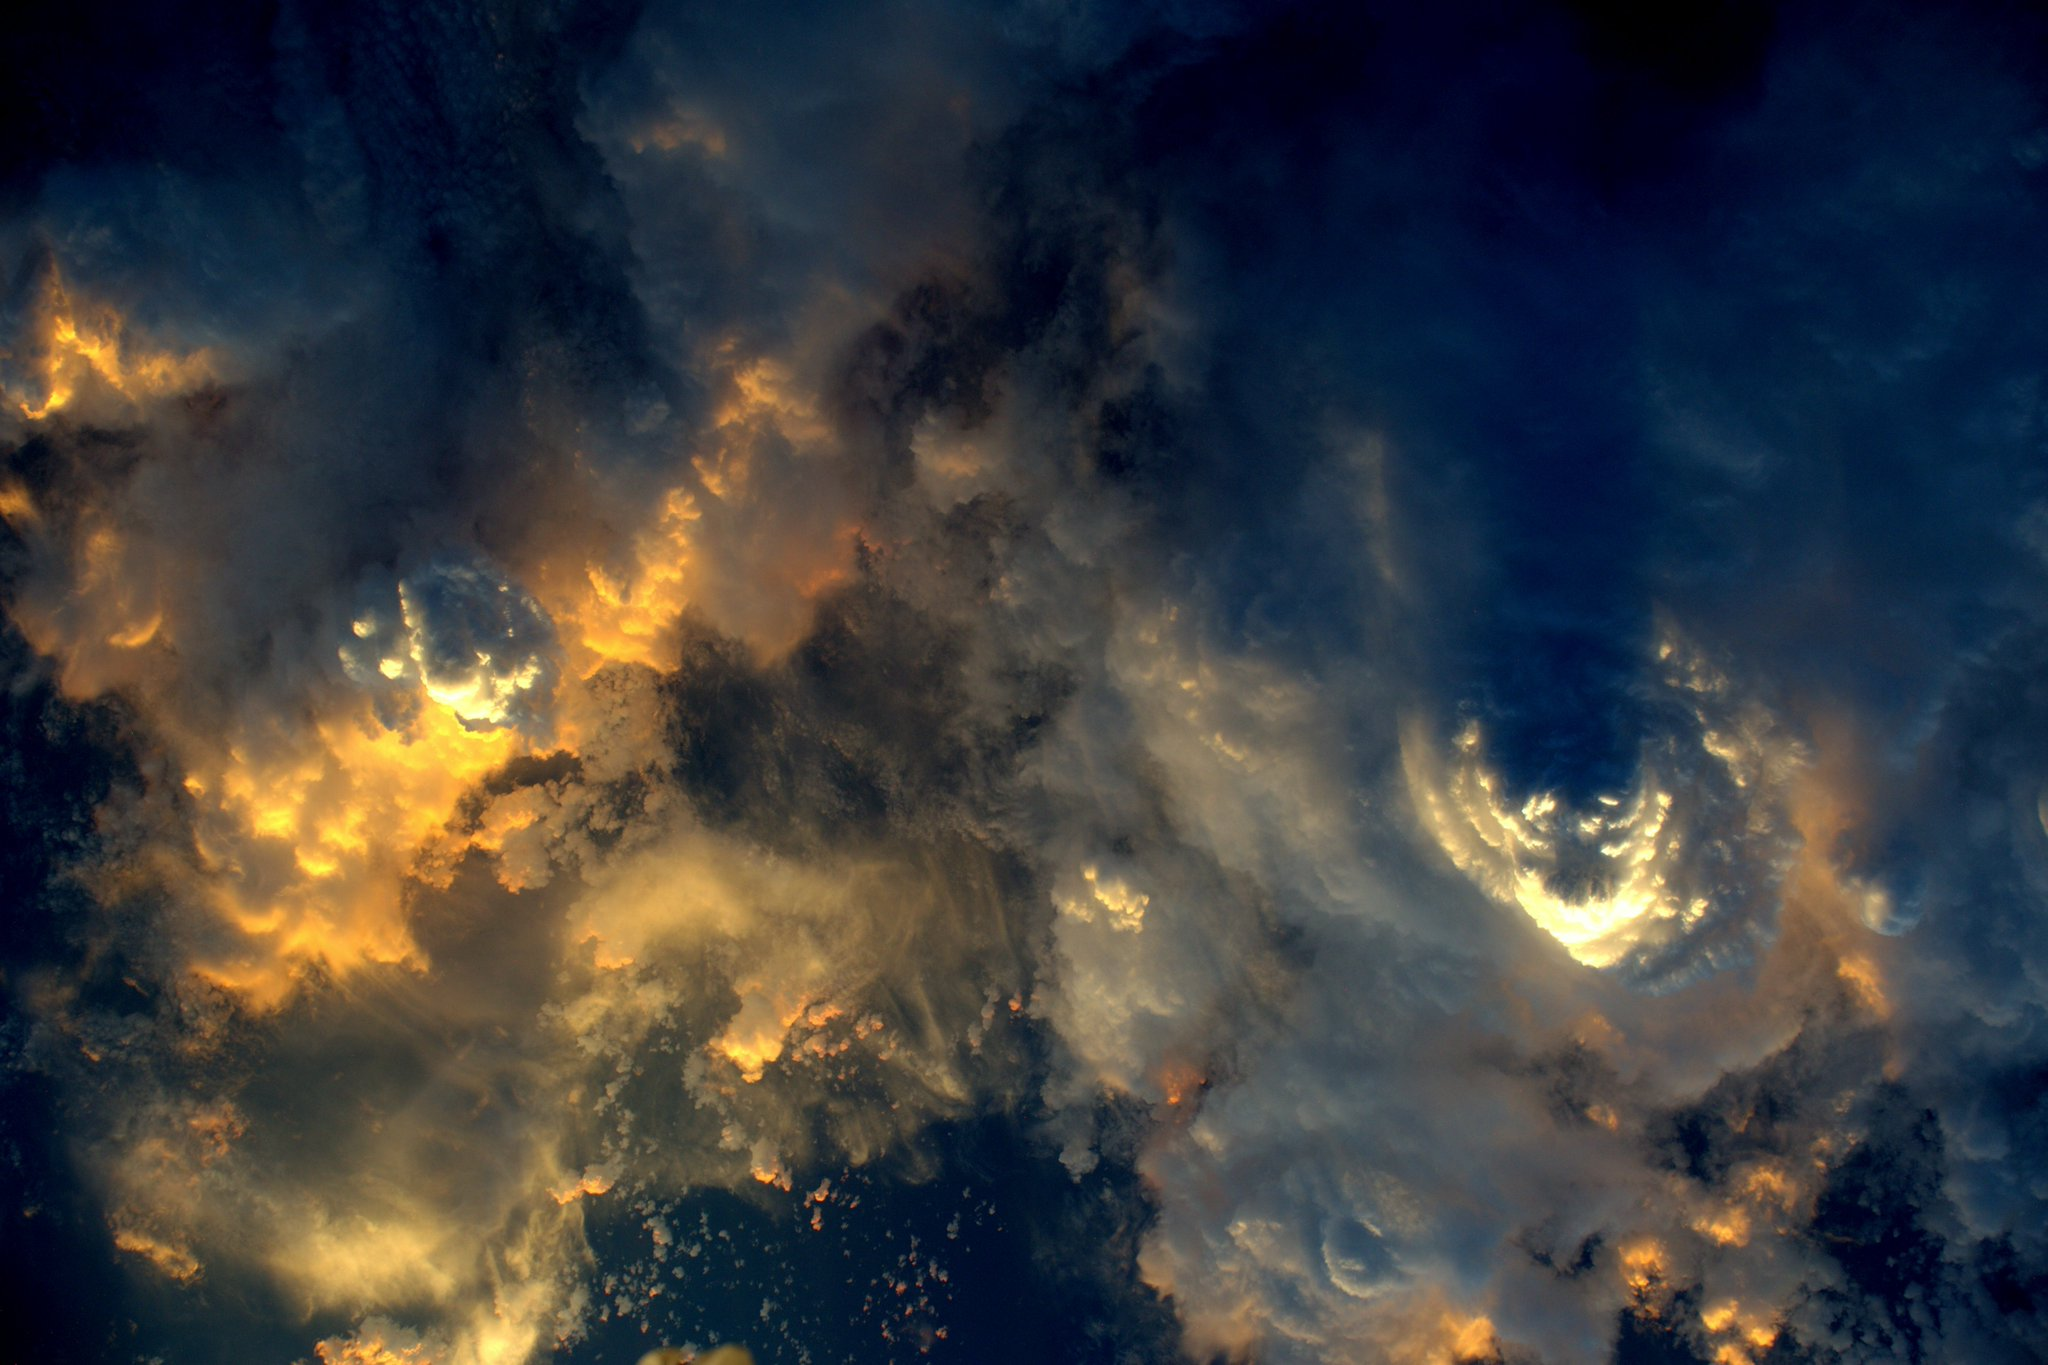 Storm clouds from above at #sunset . @Space_Station https://t.co/ODE2dkUORg